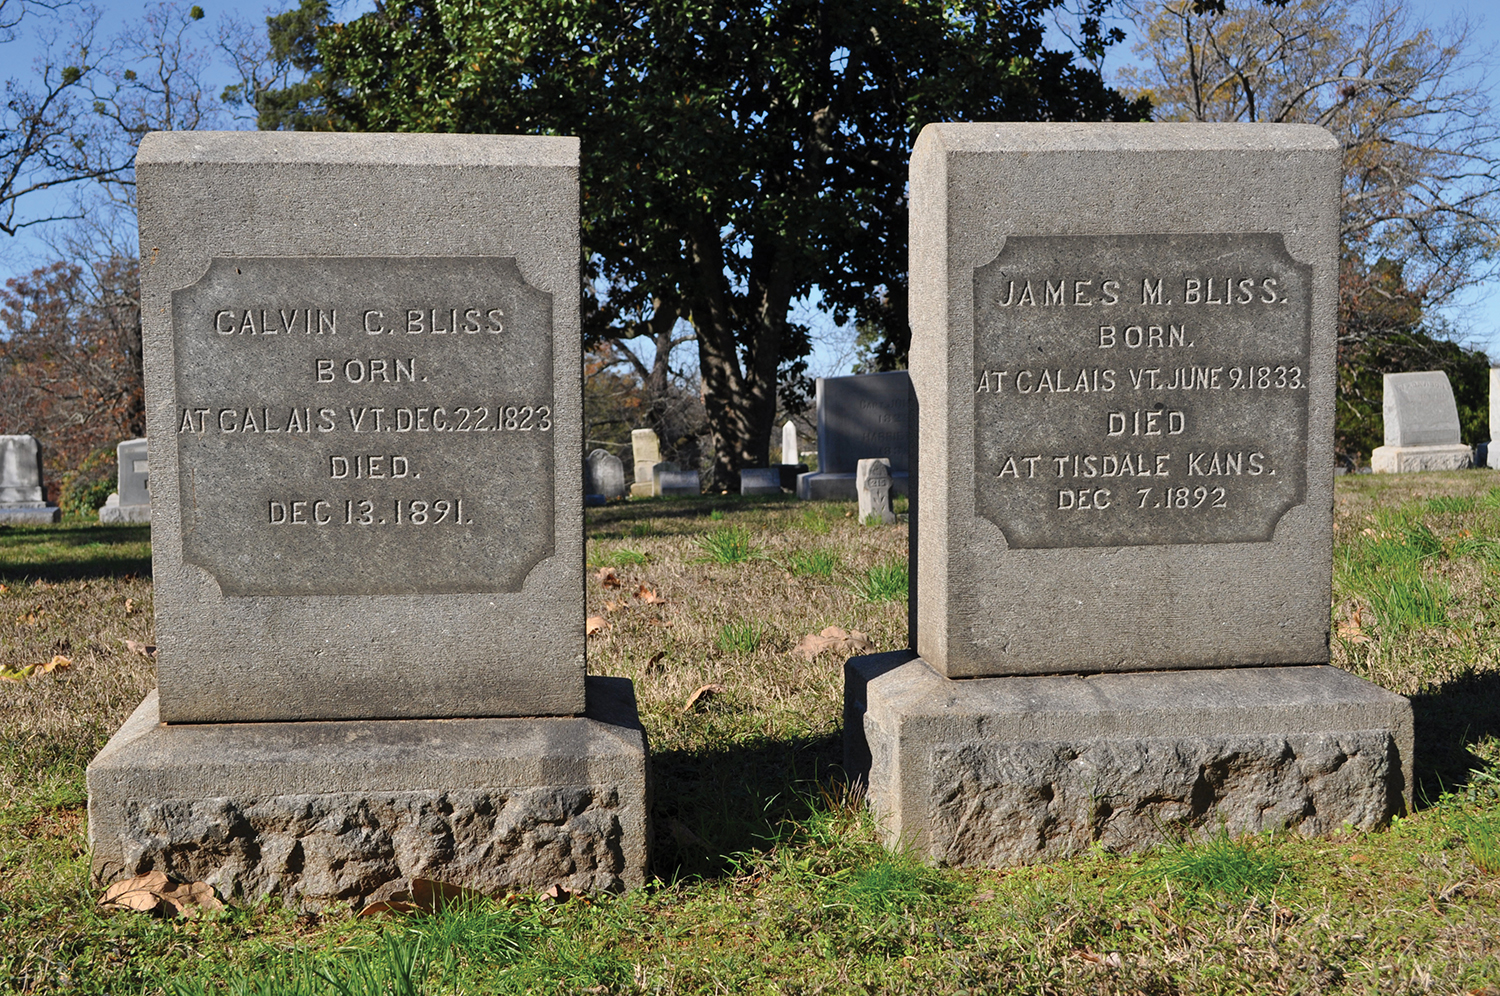 the gravesites of Calvin and James